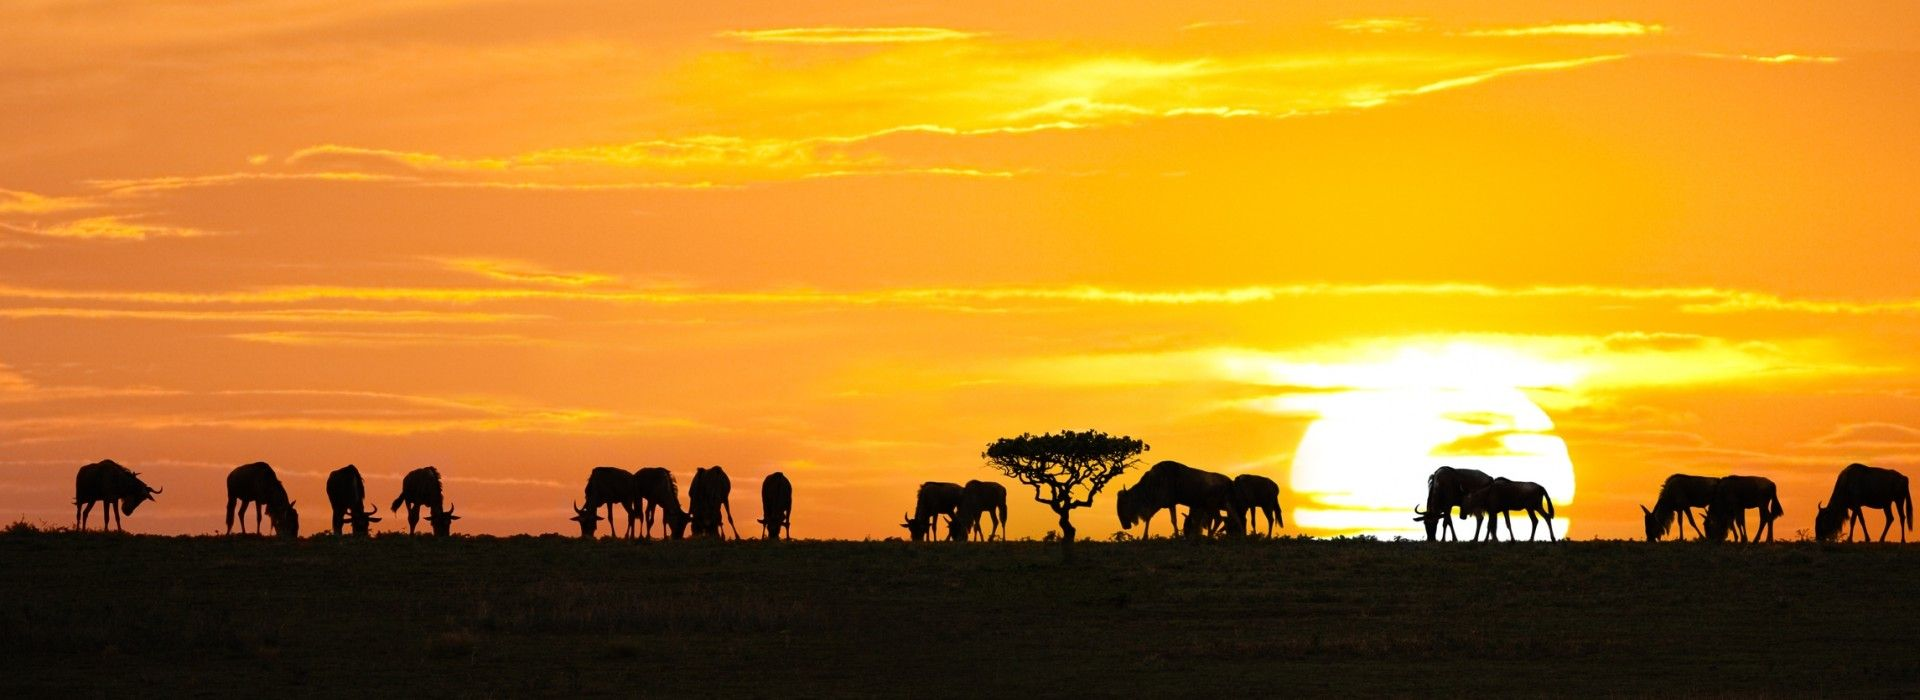 Wildlife, landscapes and nature Tours in Tanzania Safari Parks